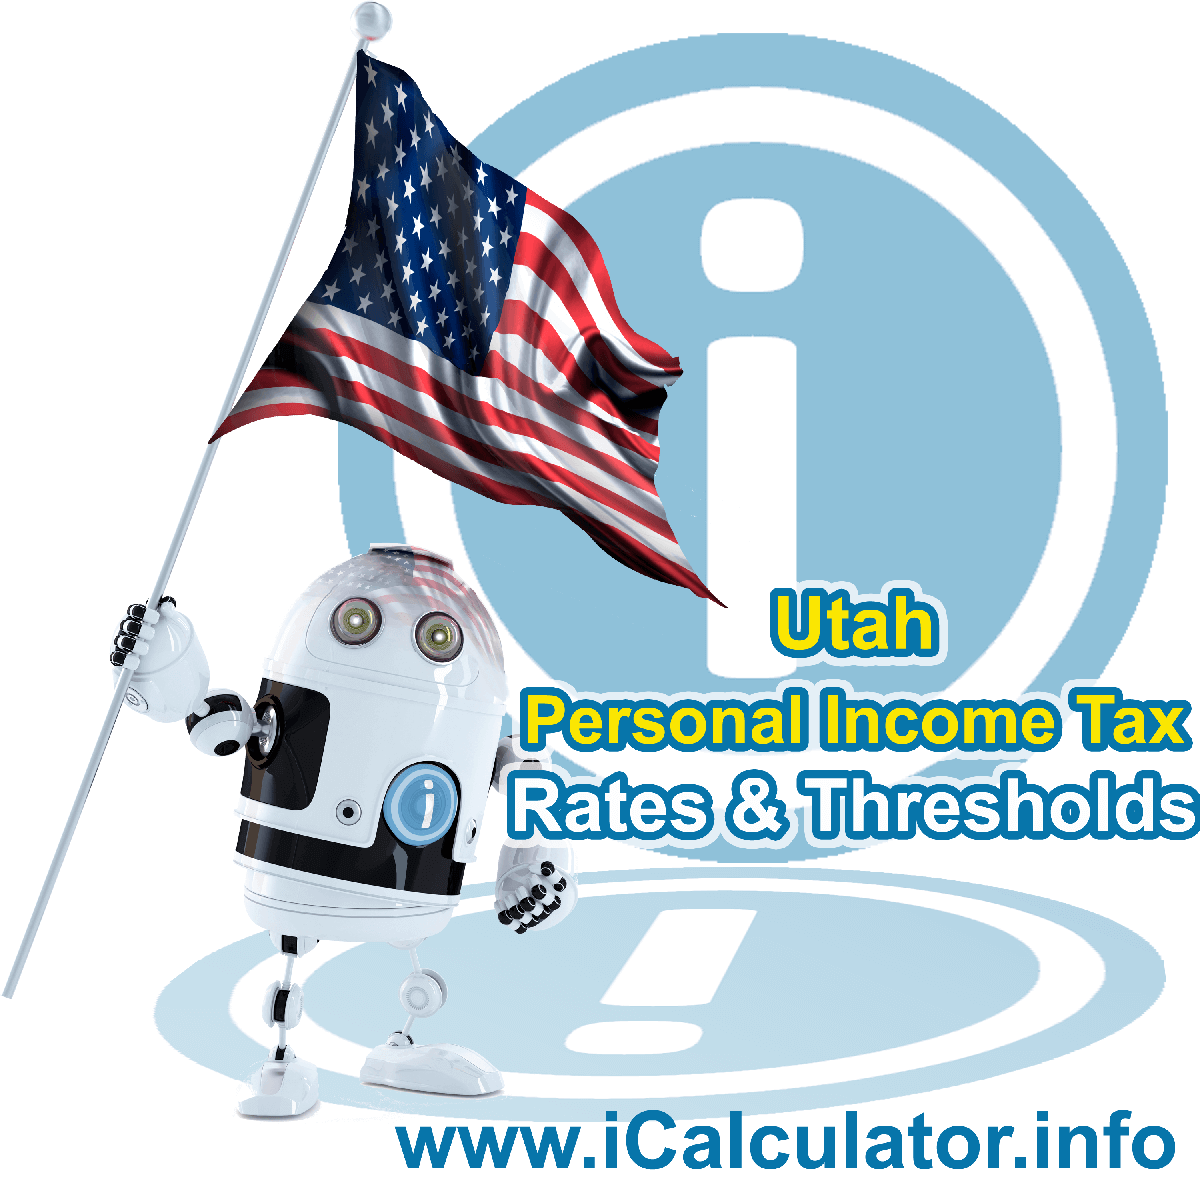 Utah State Tax Tables 2018. This image displays details of the Utah State Tax Tables for the 2018 tax return year which is provided in support of the 2018 US Tax Calculator